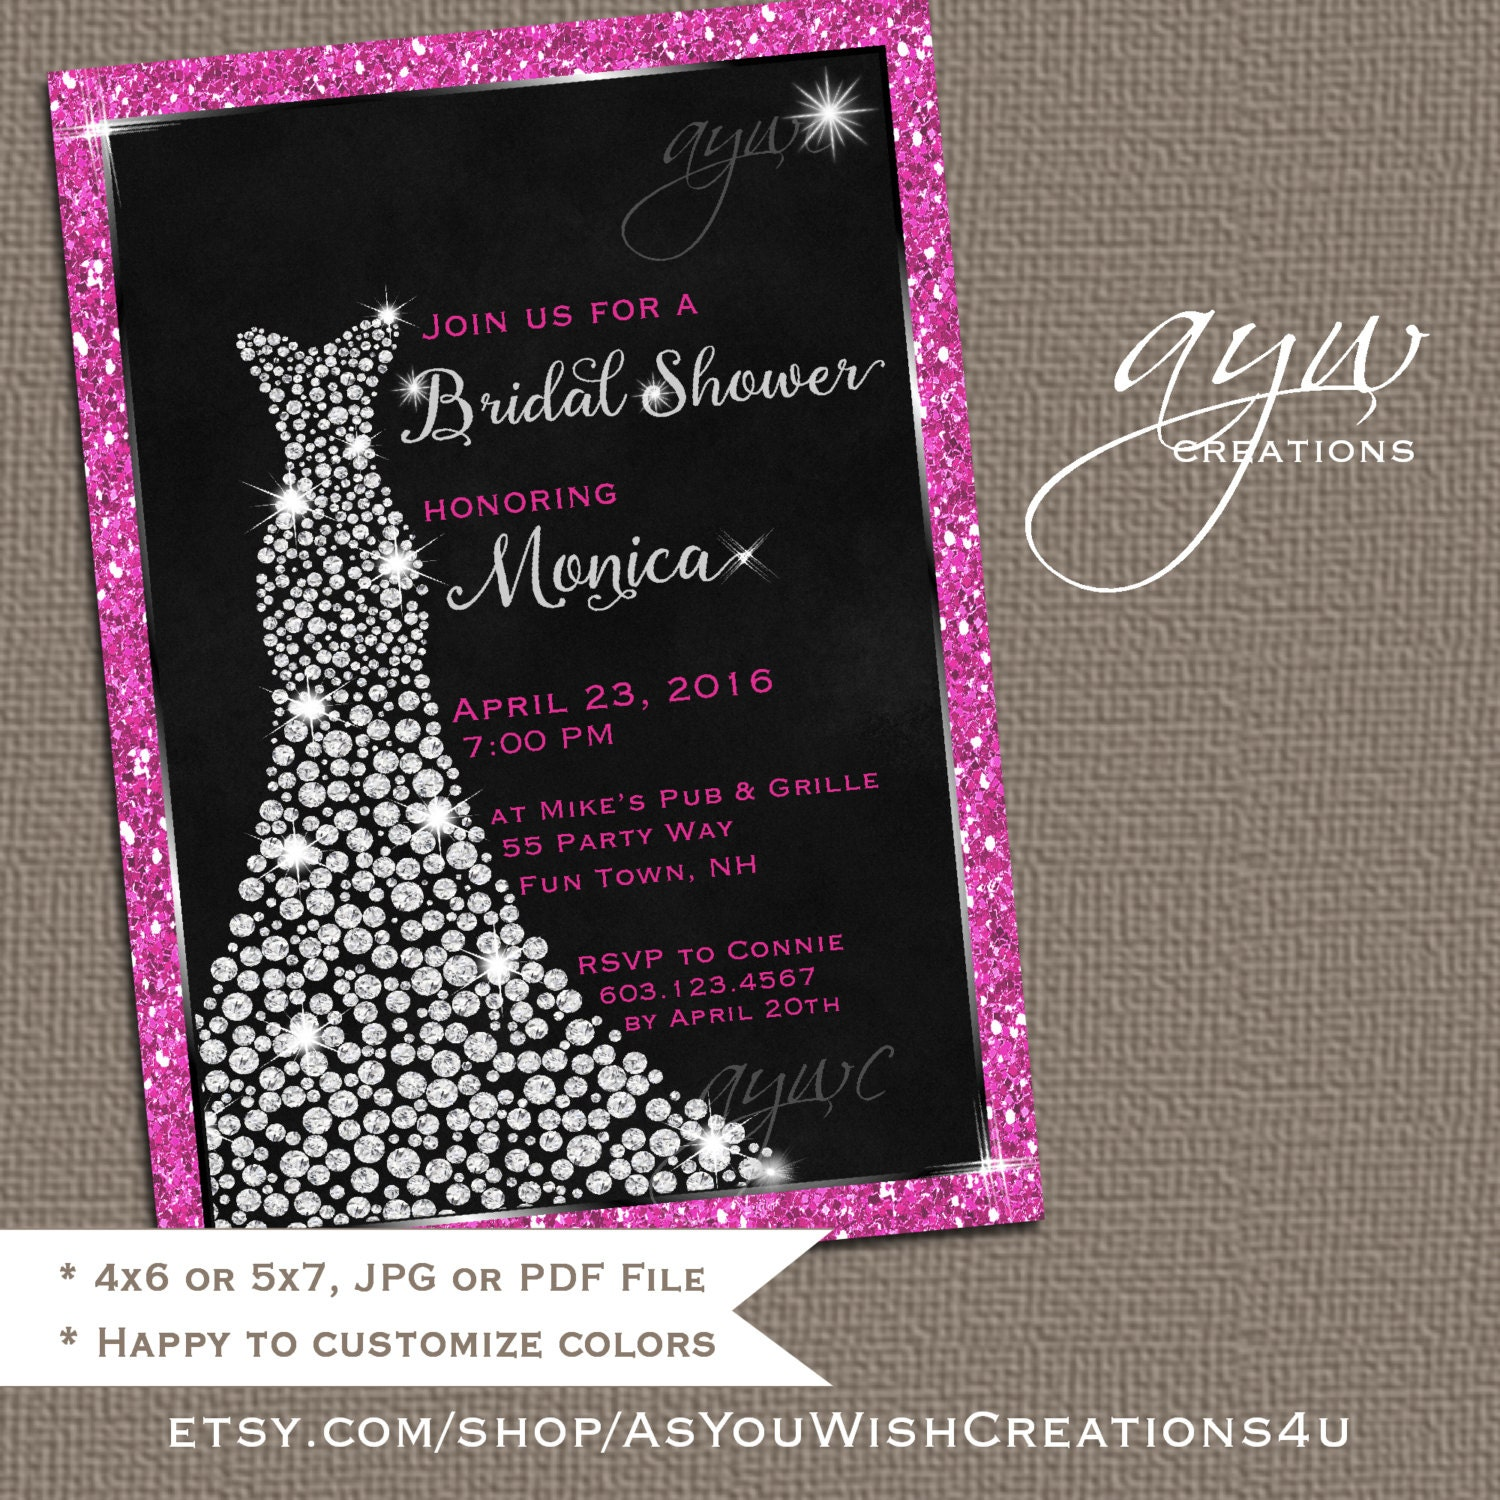 Wedding dress bridal shower invitation printable bridal shower for Wedding dress bridal shower invitations